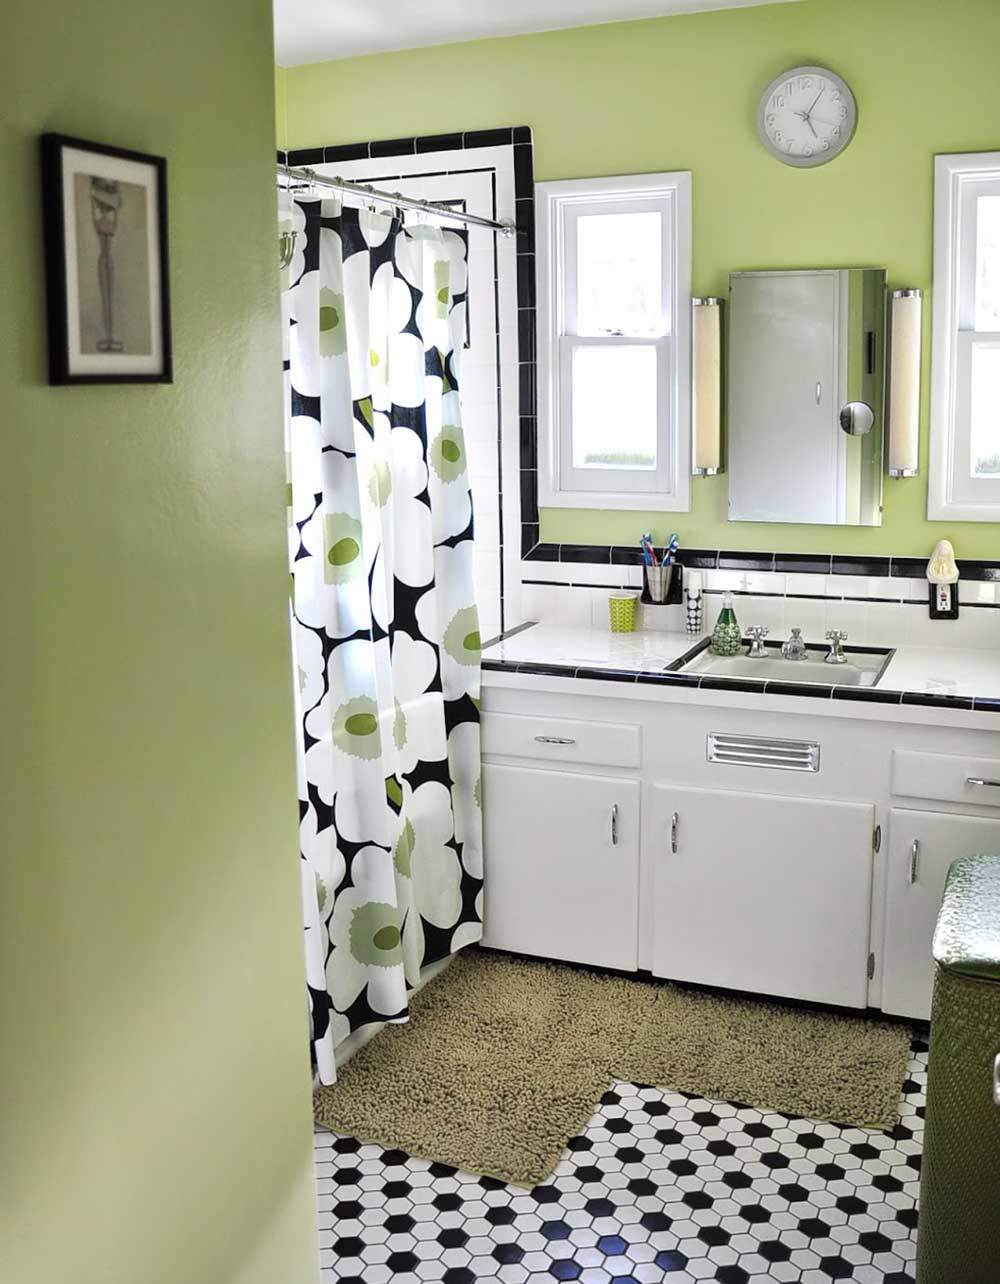 Black and white tile bathrooms done 6 different ways for Vintage bathroom photos